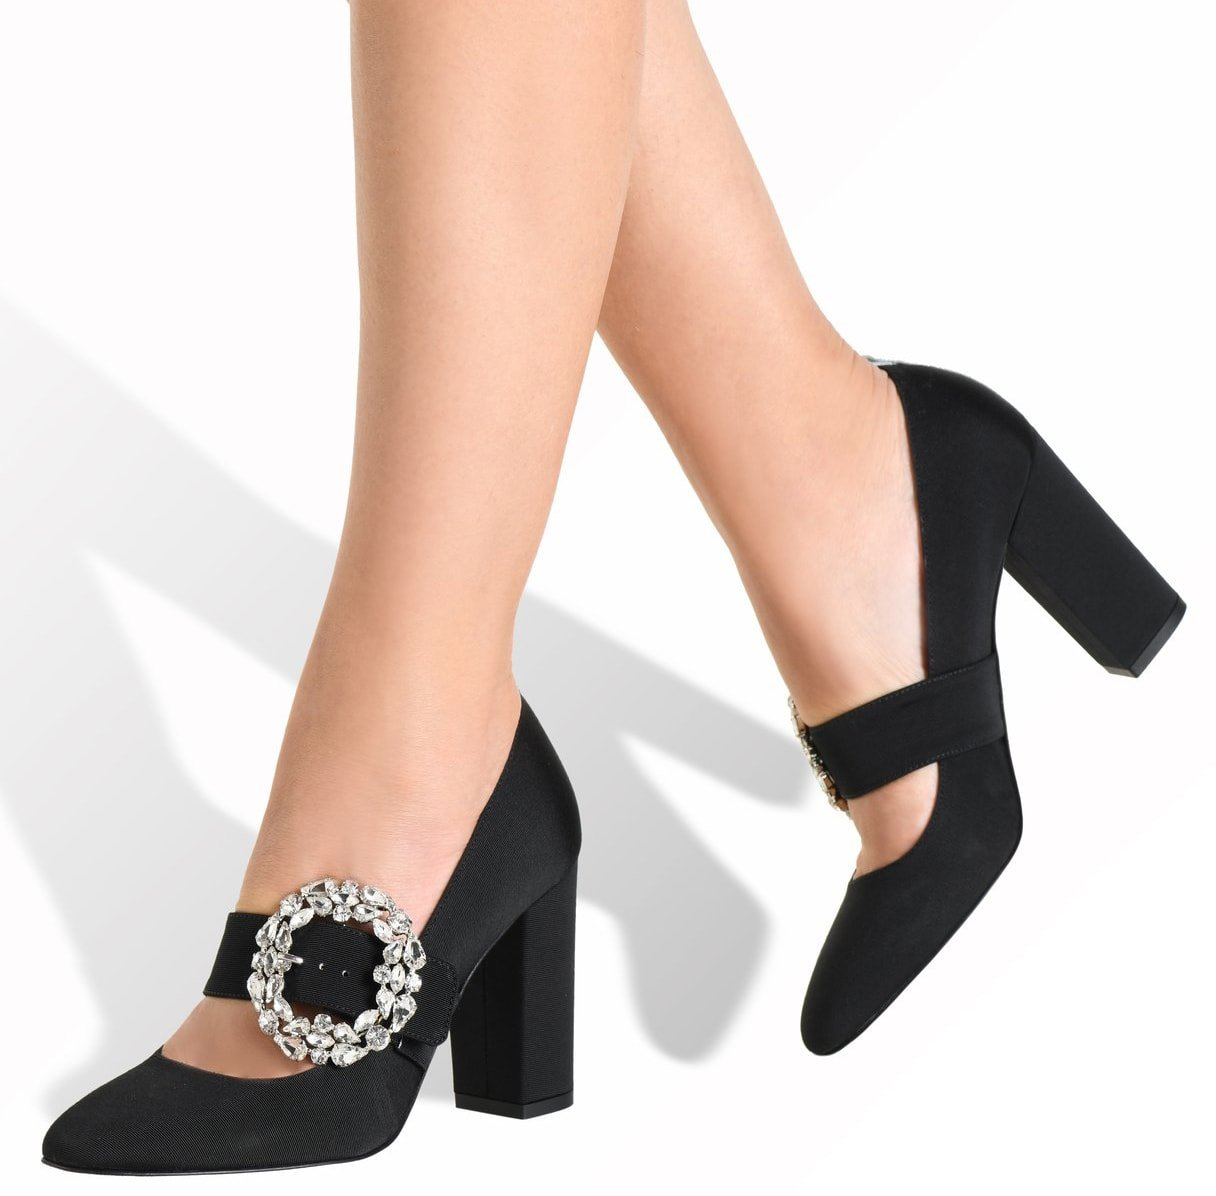 The SJP Celine pumps are known for their crystal buckled Mary Jane straps